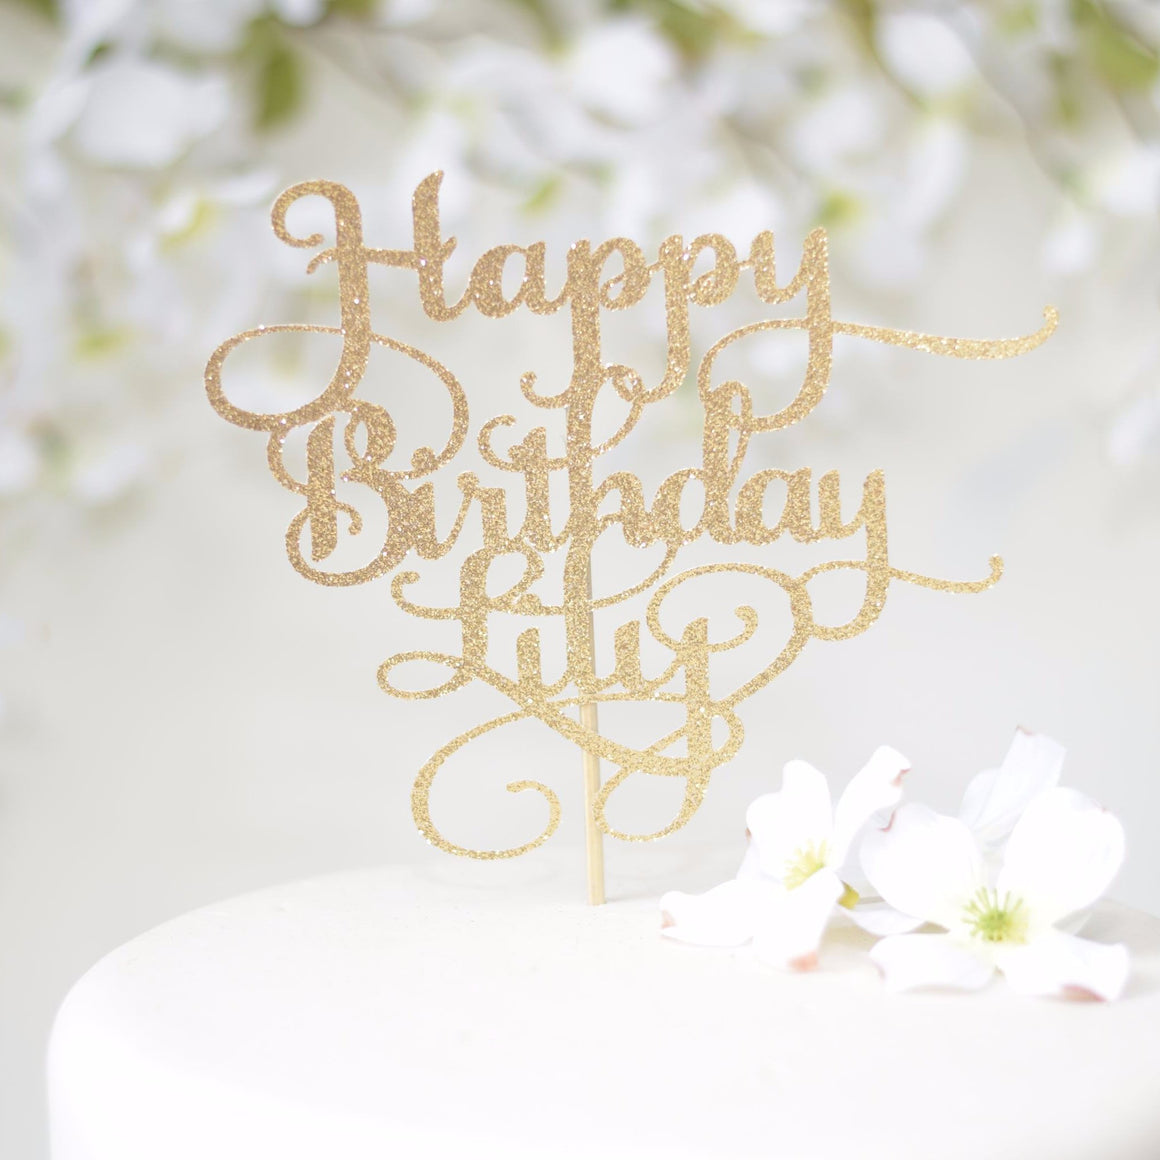 Happy Birthday Lily gold spark glitter cake topper